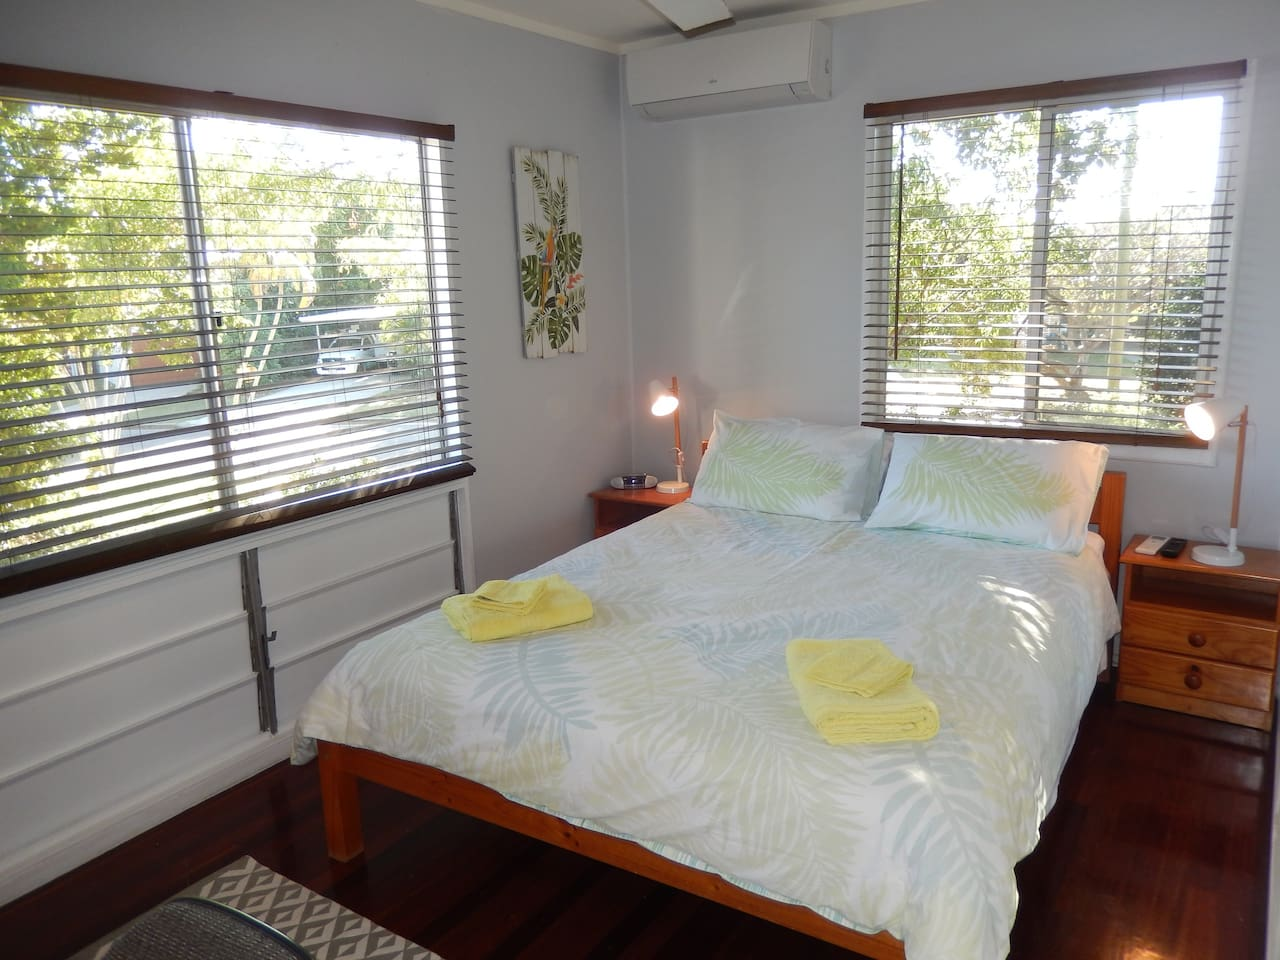 Comfy Queen sized bed in a breezy bedroom with airconditioning if required